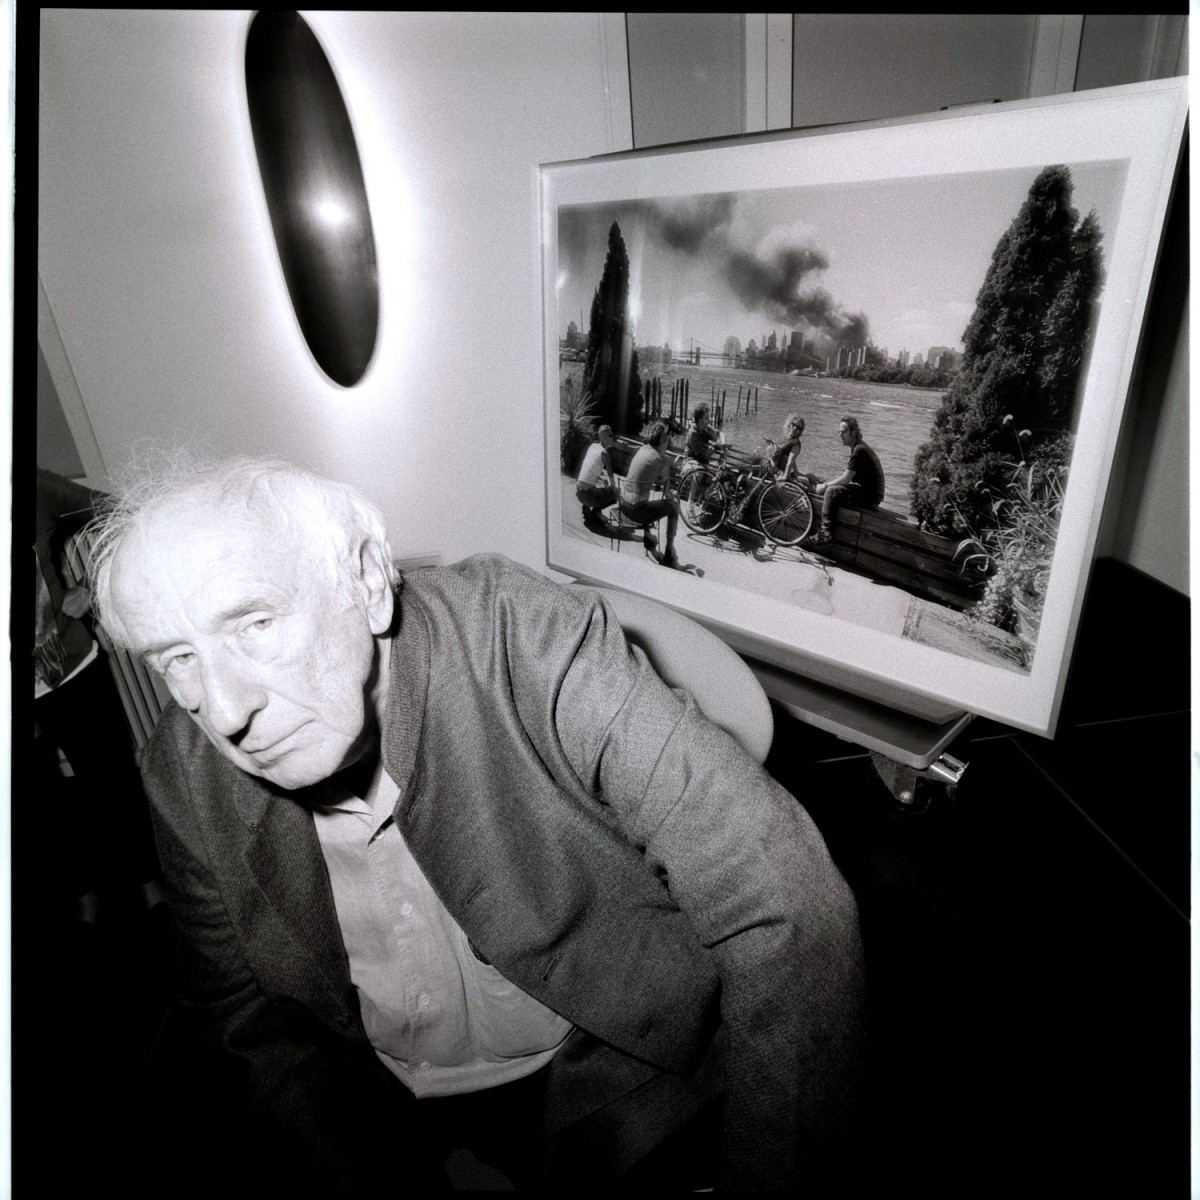 Thomas Hoepker with his 9/11 Picture, Hamburg 2012